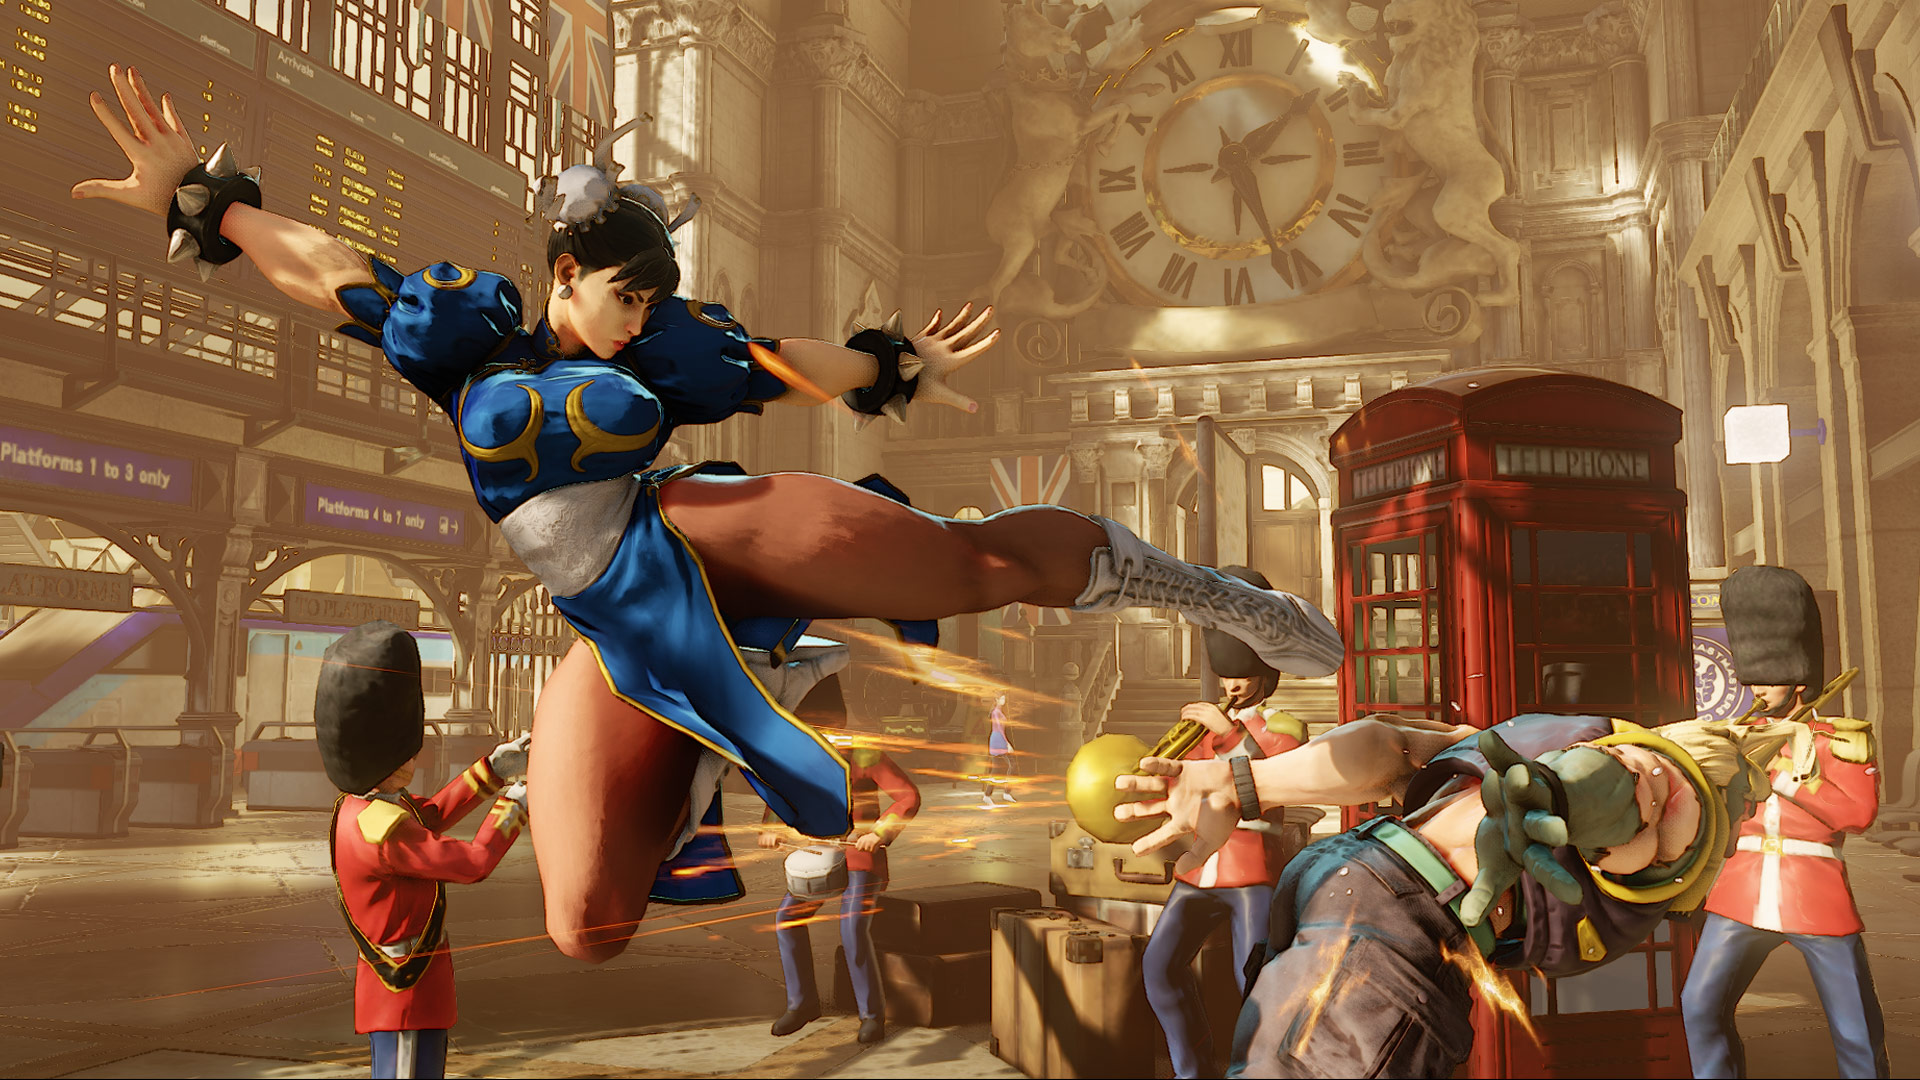 Street Fighter 5 beta is mostly for network test 1 out of 2 image gallery